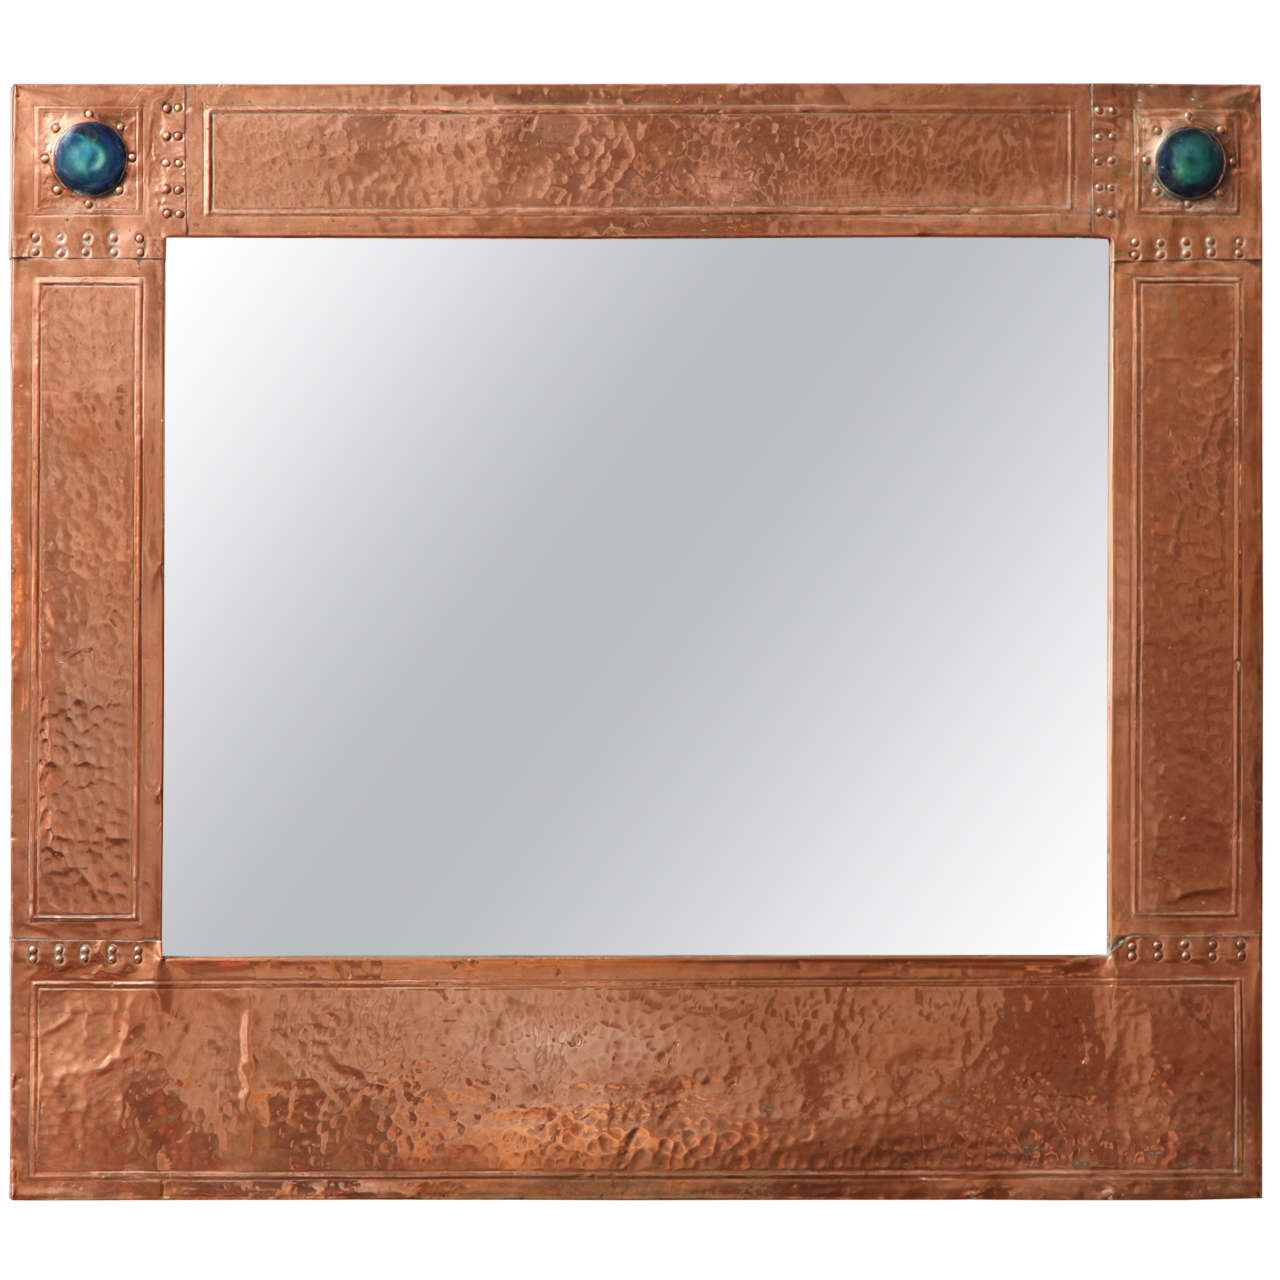 Arts and crafts mirrors - English Arts Crafts Copper Mirror 1